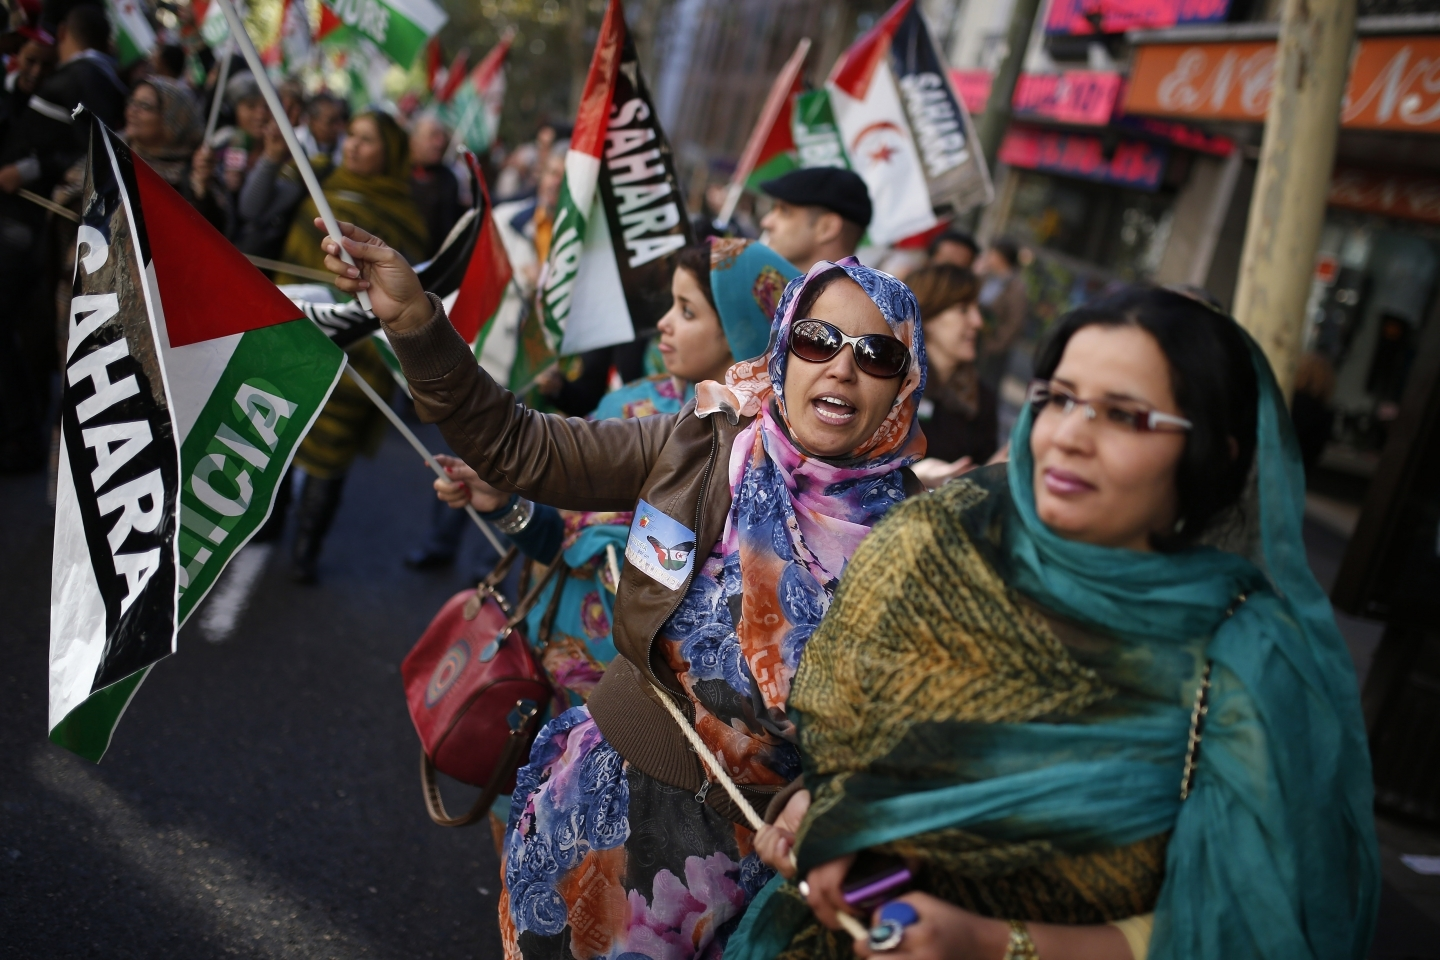 Women from Western Sahara shout slogans in support of Free Western Sahara, during a protest in Madrid (AP Photo/Andres Kudacki)